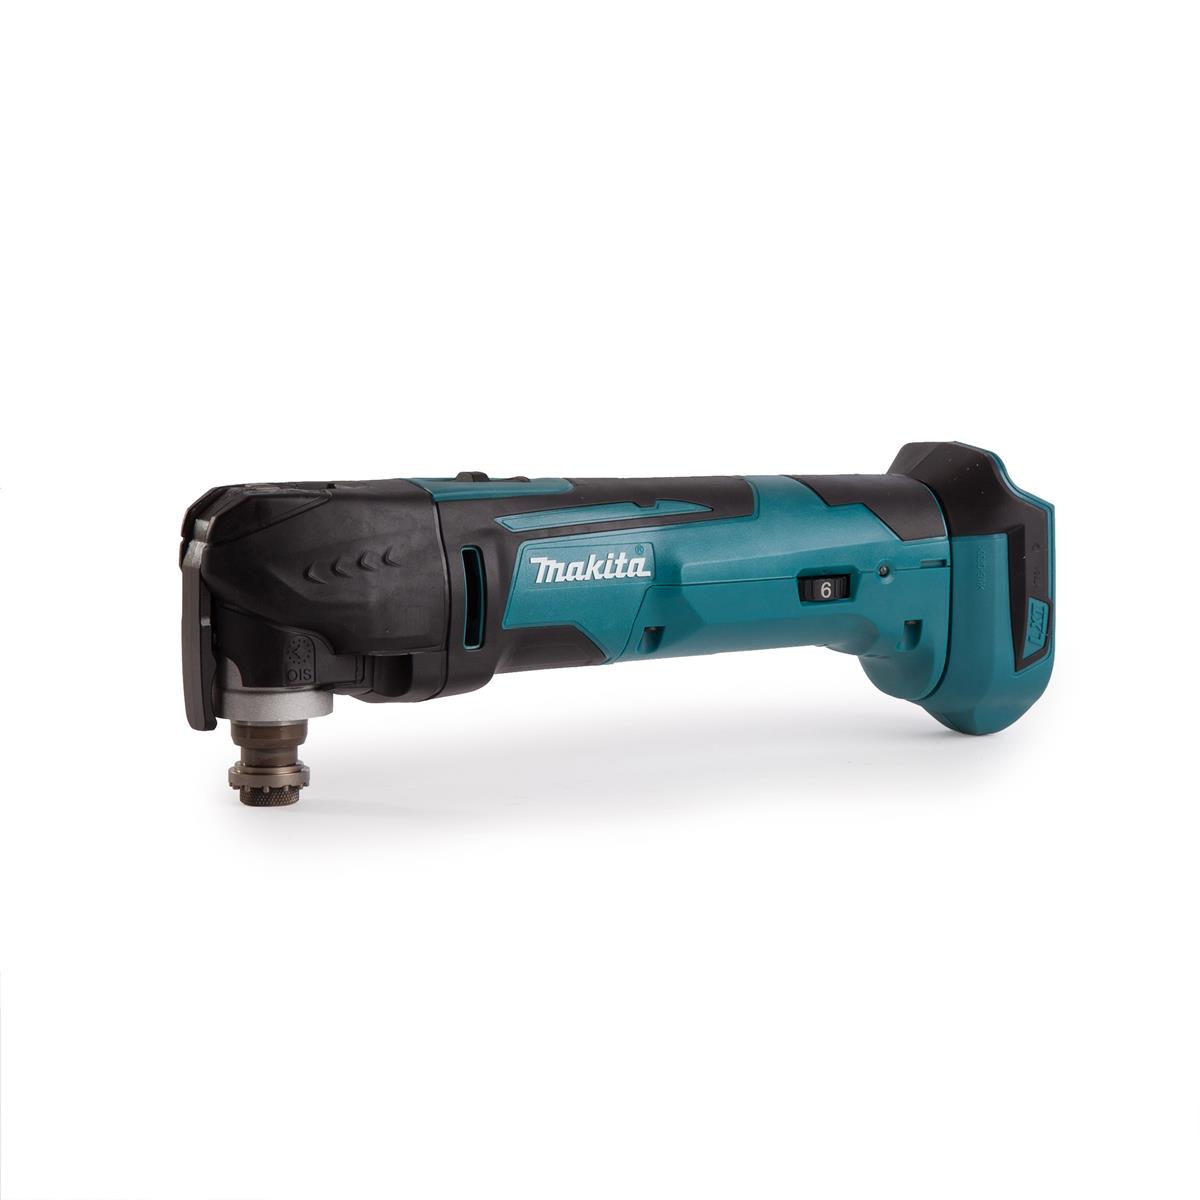 makita 18v cordless multi tool sol end 6 29 2018 12 15 am. Black Bedroom Furniture Sets. Home Design Ideas